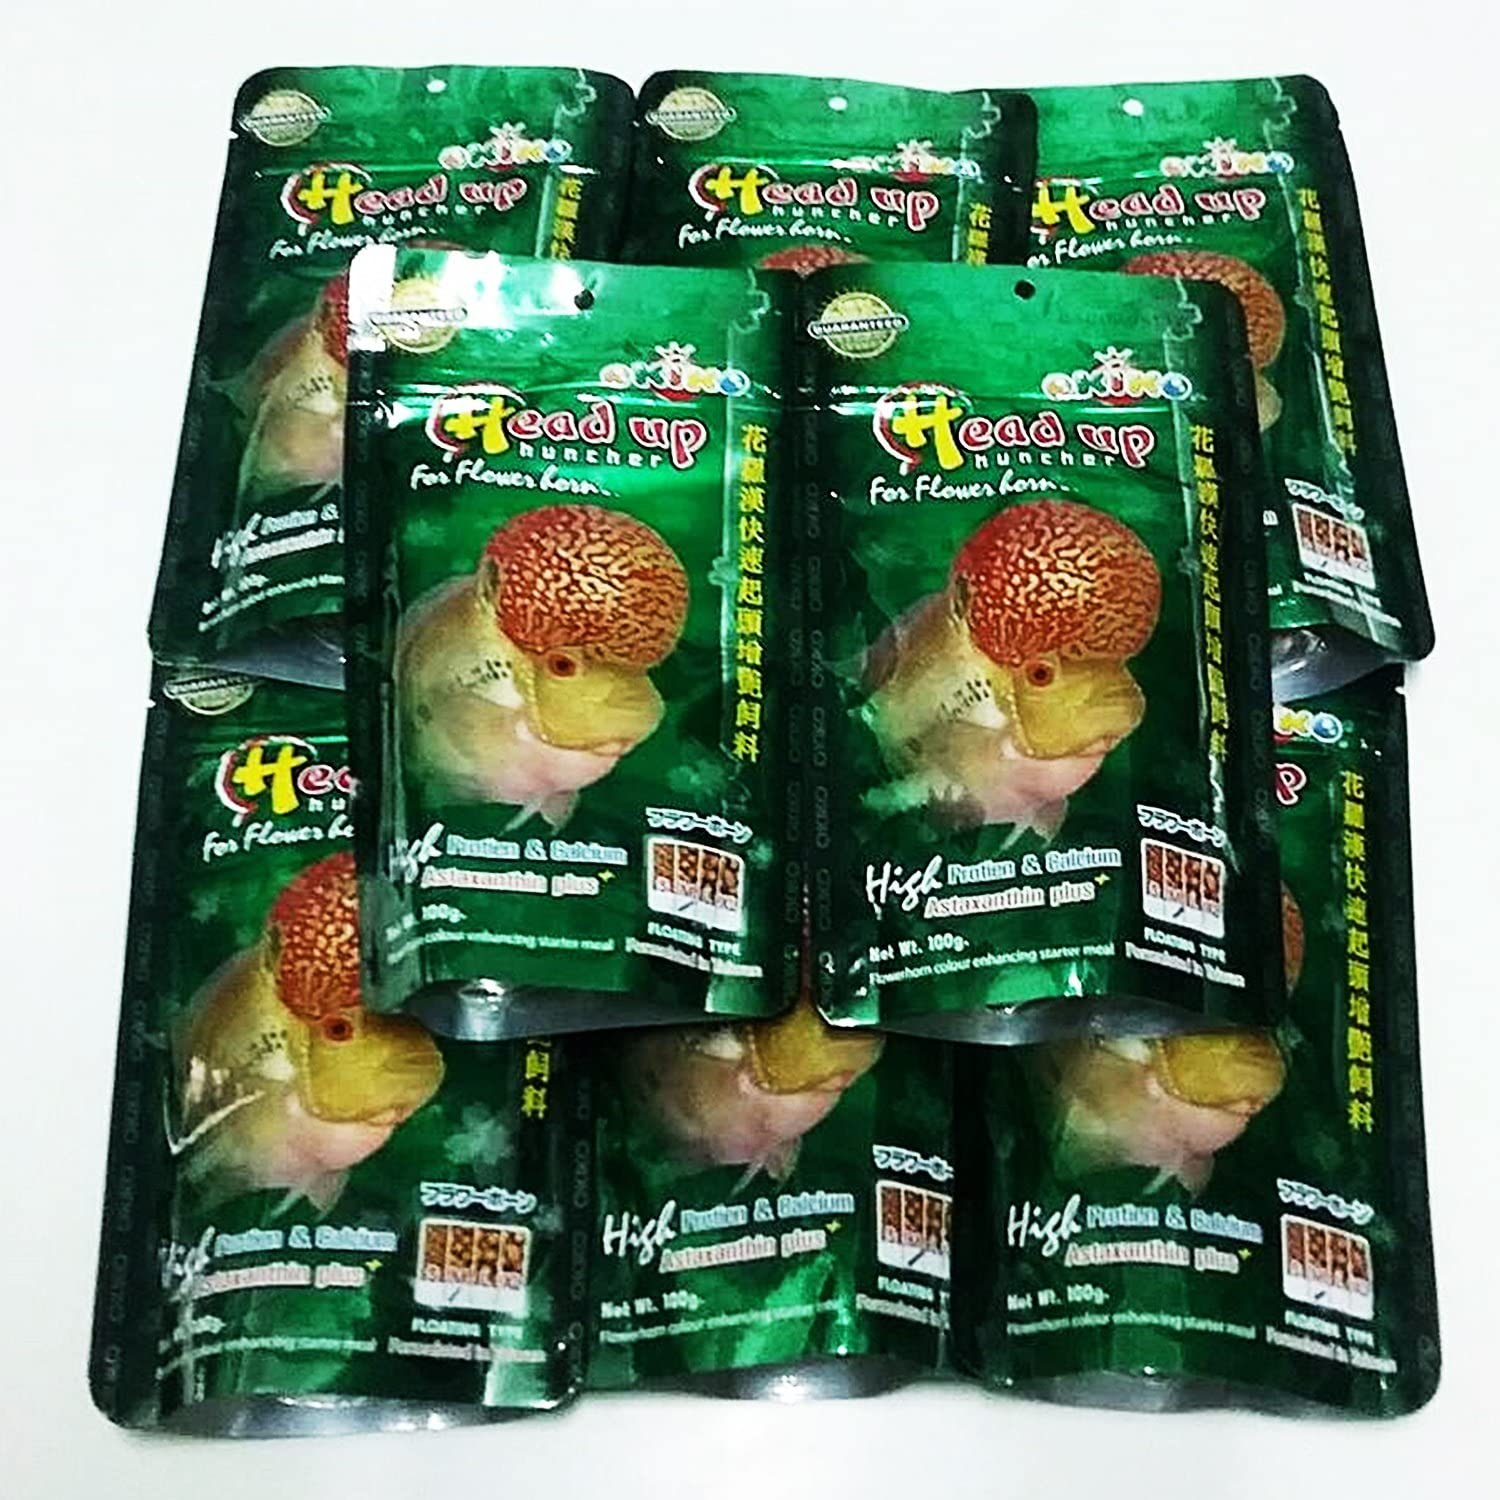 OKIKO New 6 Pieces of 3.5 oz(100g) Head Up Hunch High Protein & Calcium Floating Pellets with Astaxanthin Plus Flowerhorn Cichlid Fish Food